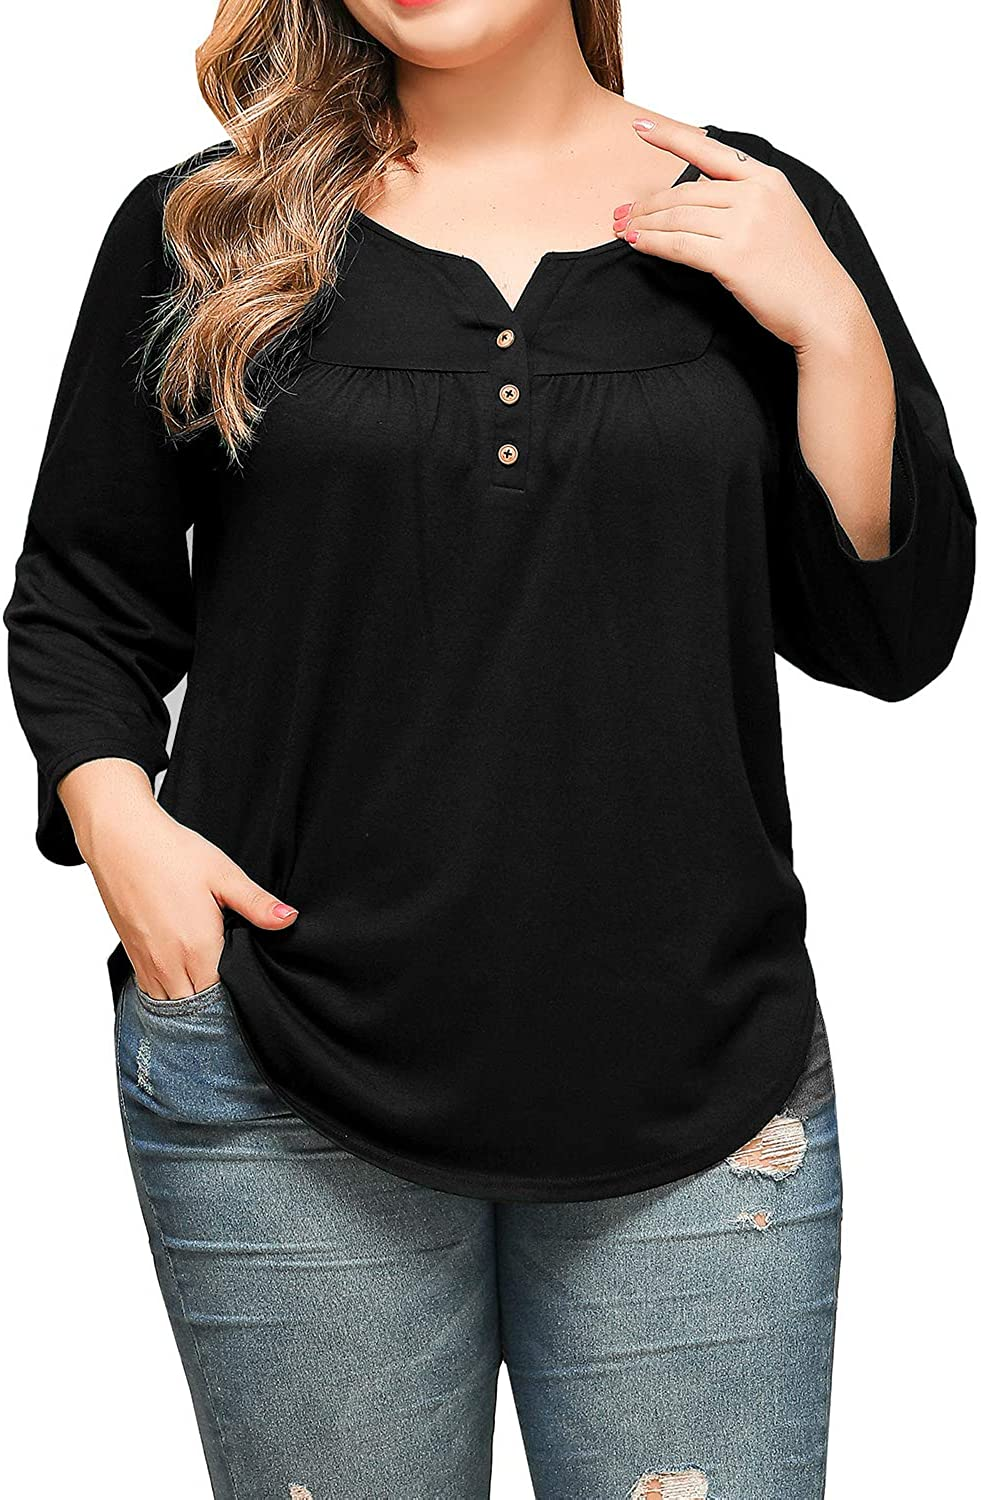 JIOTANG XL-4X Plus Size Top for Women Summer Henley V Neck Short Sleeve Buttons Up Pleated Tunic Tops